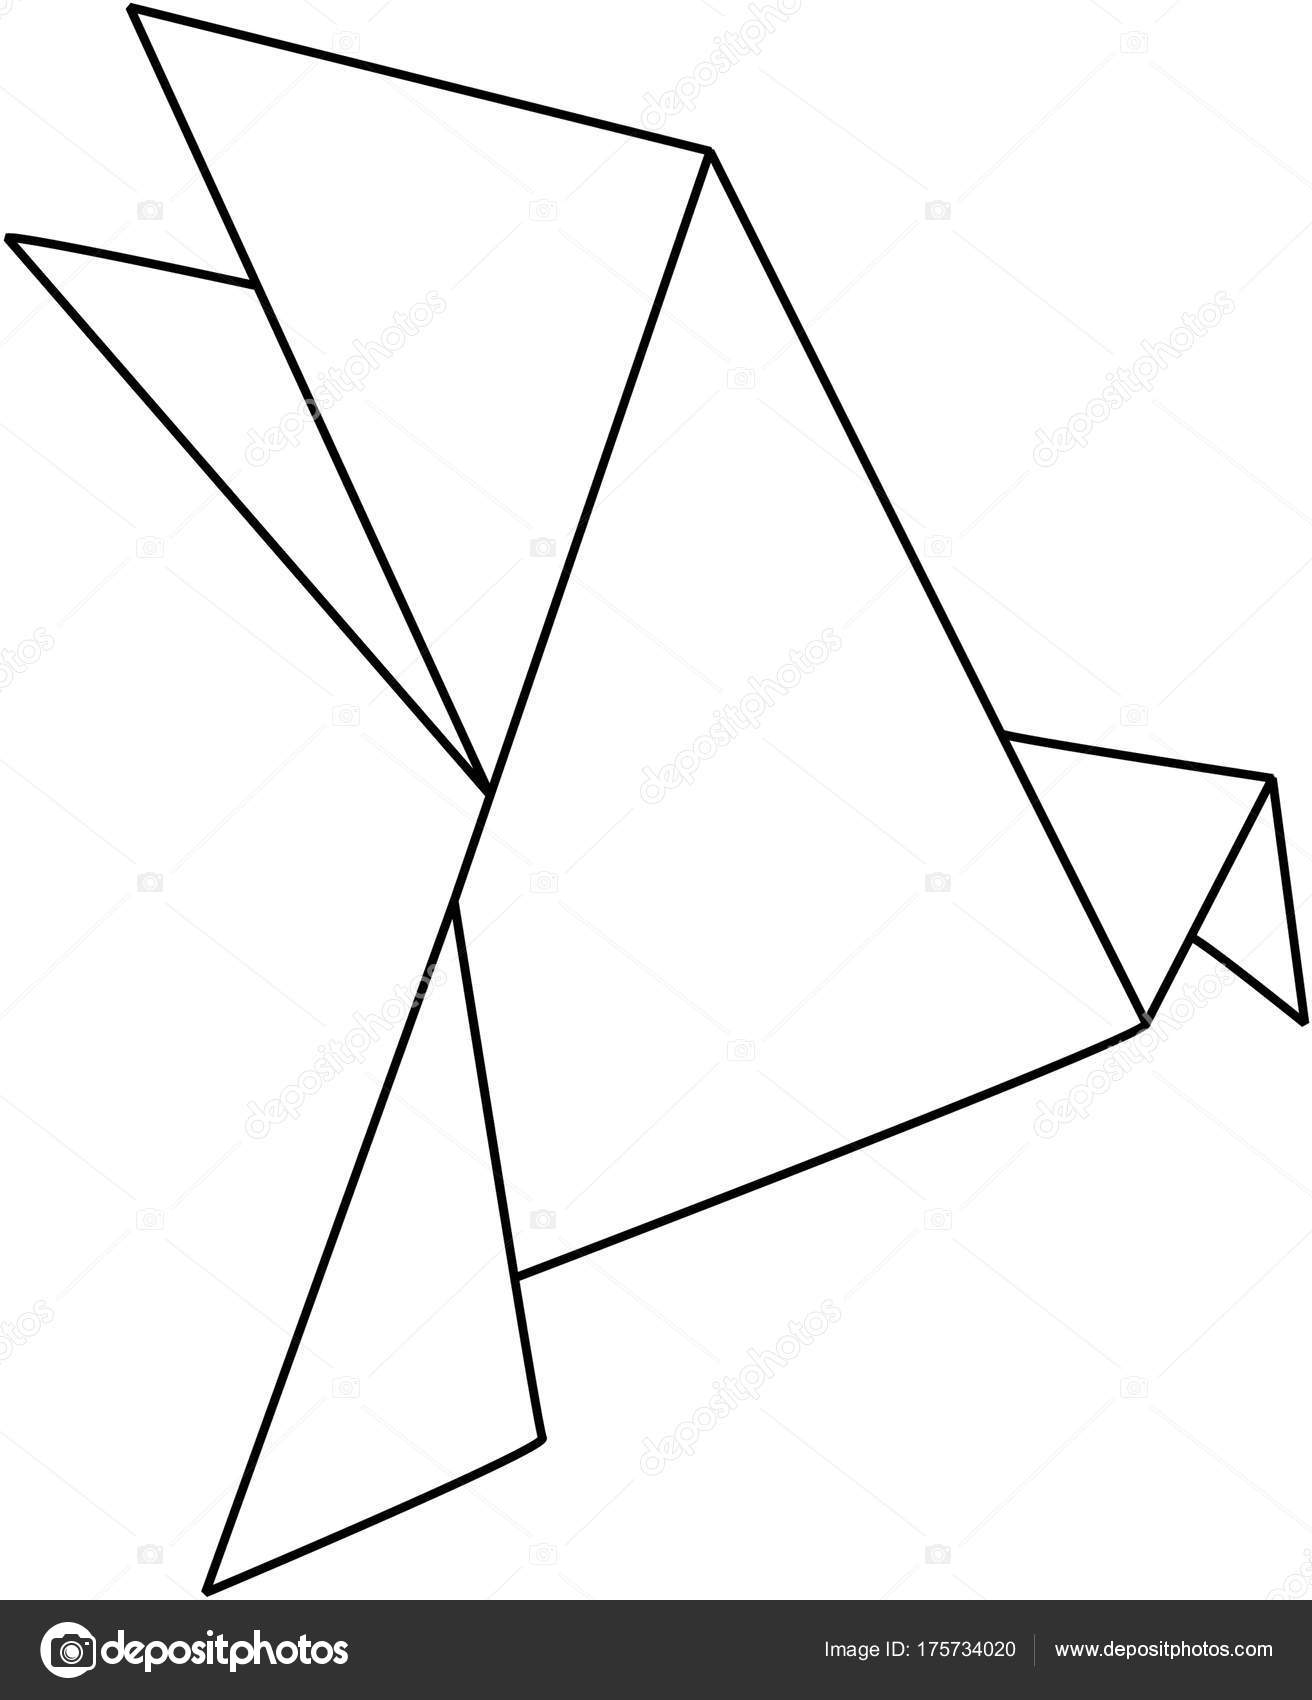 Origami Bird Line Drawing Stock Photo